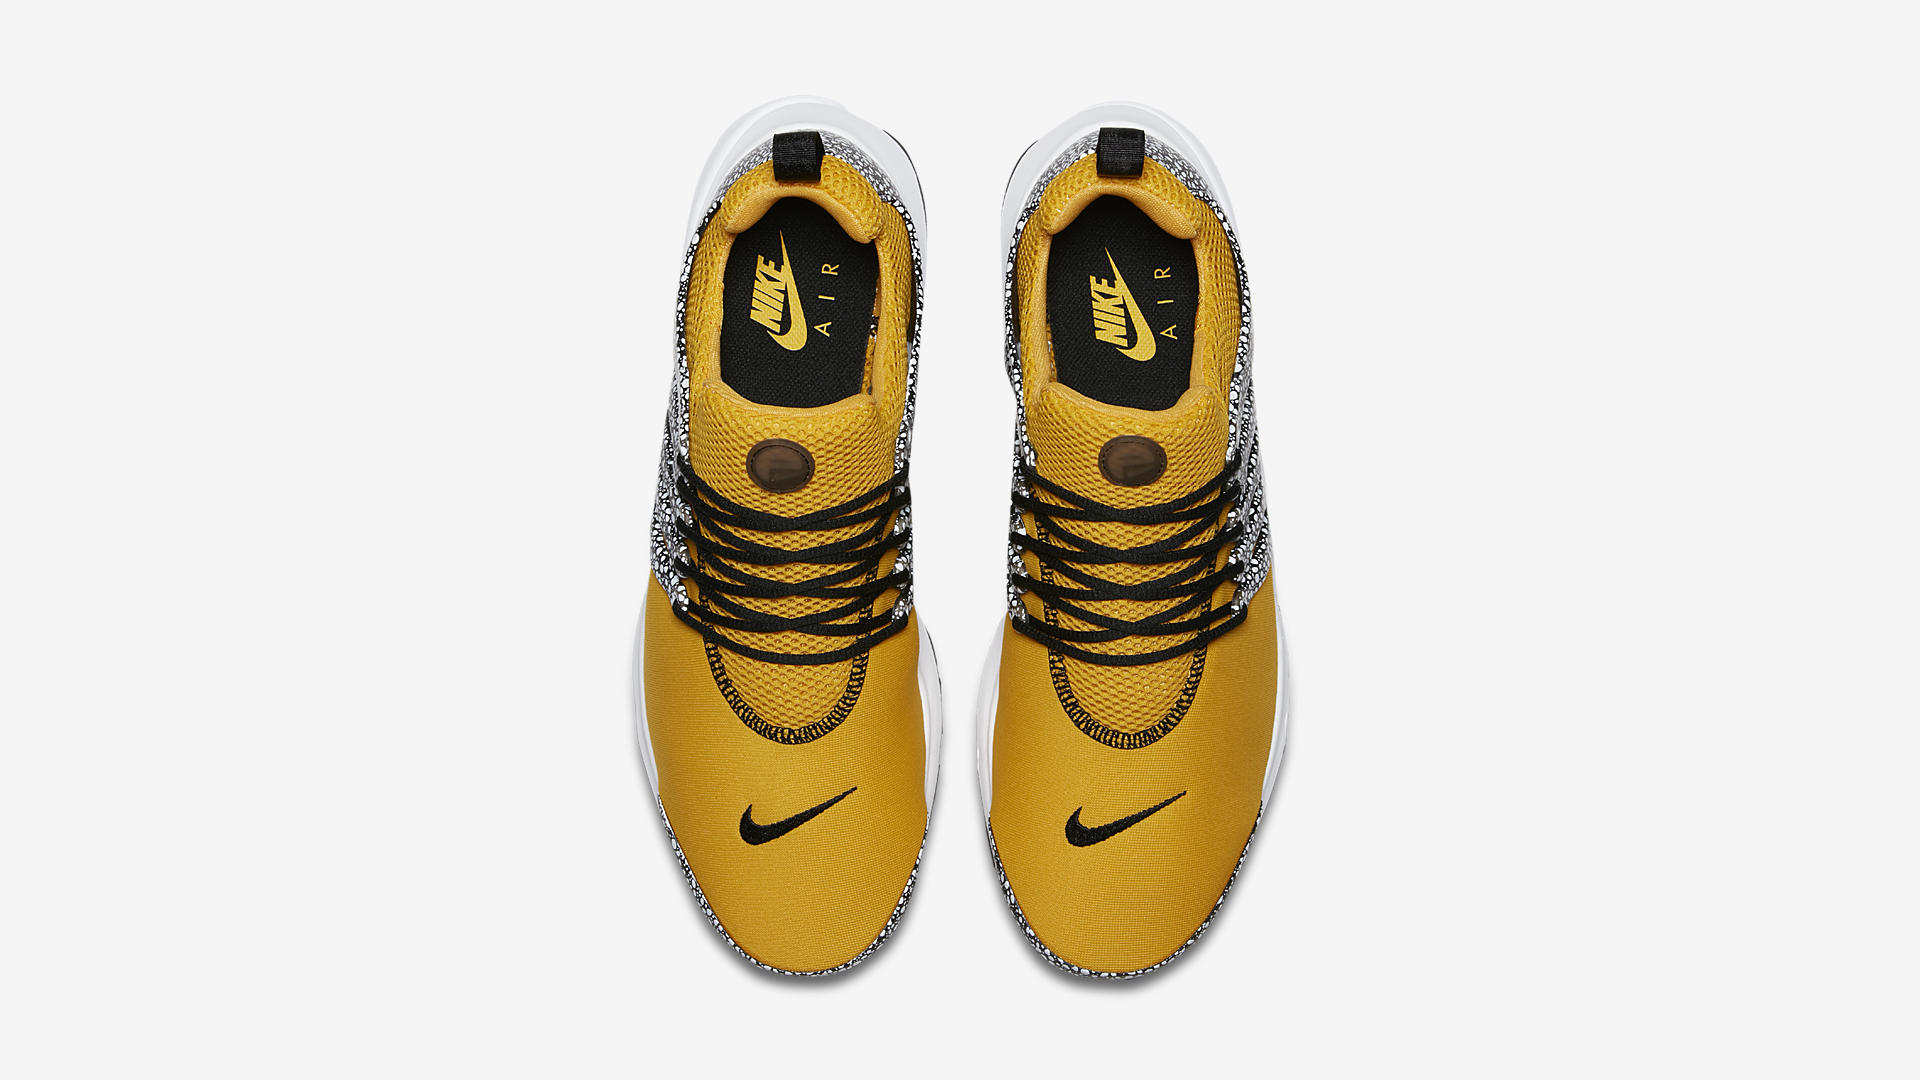 Nike Air Presto Gold Safari 886043 700 2